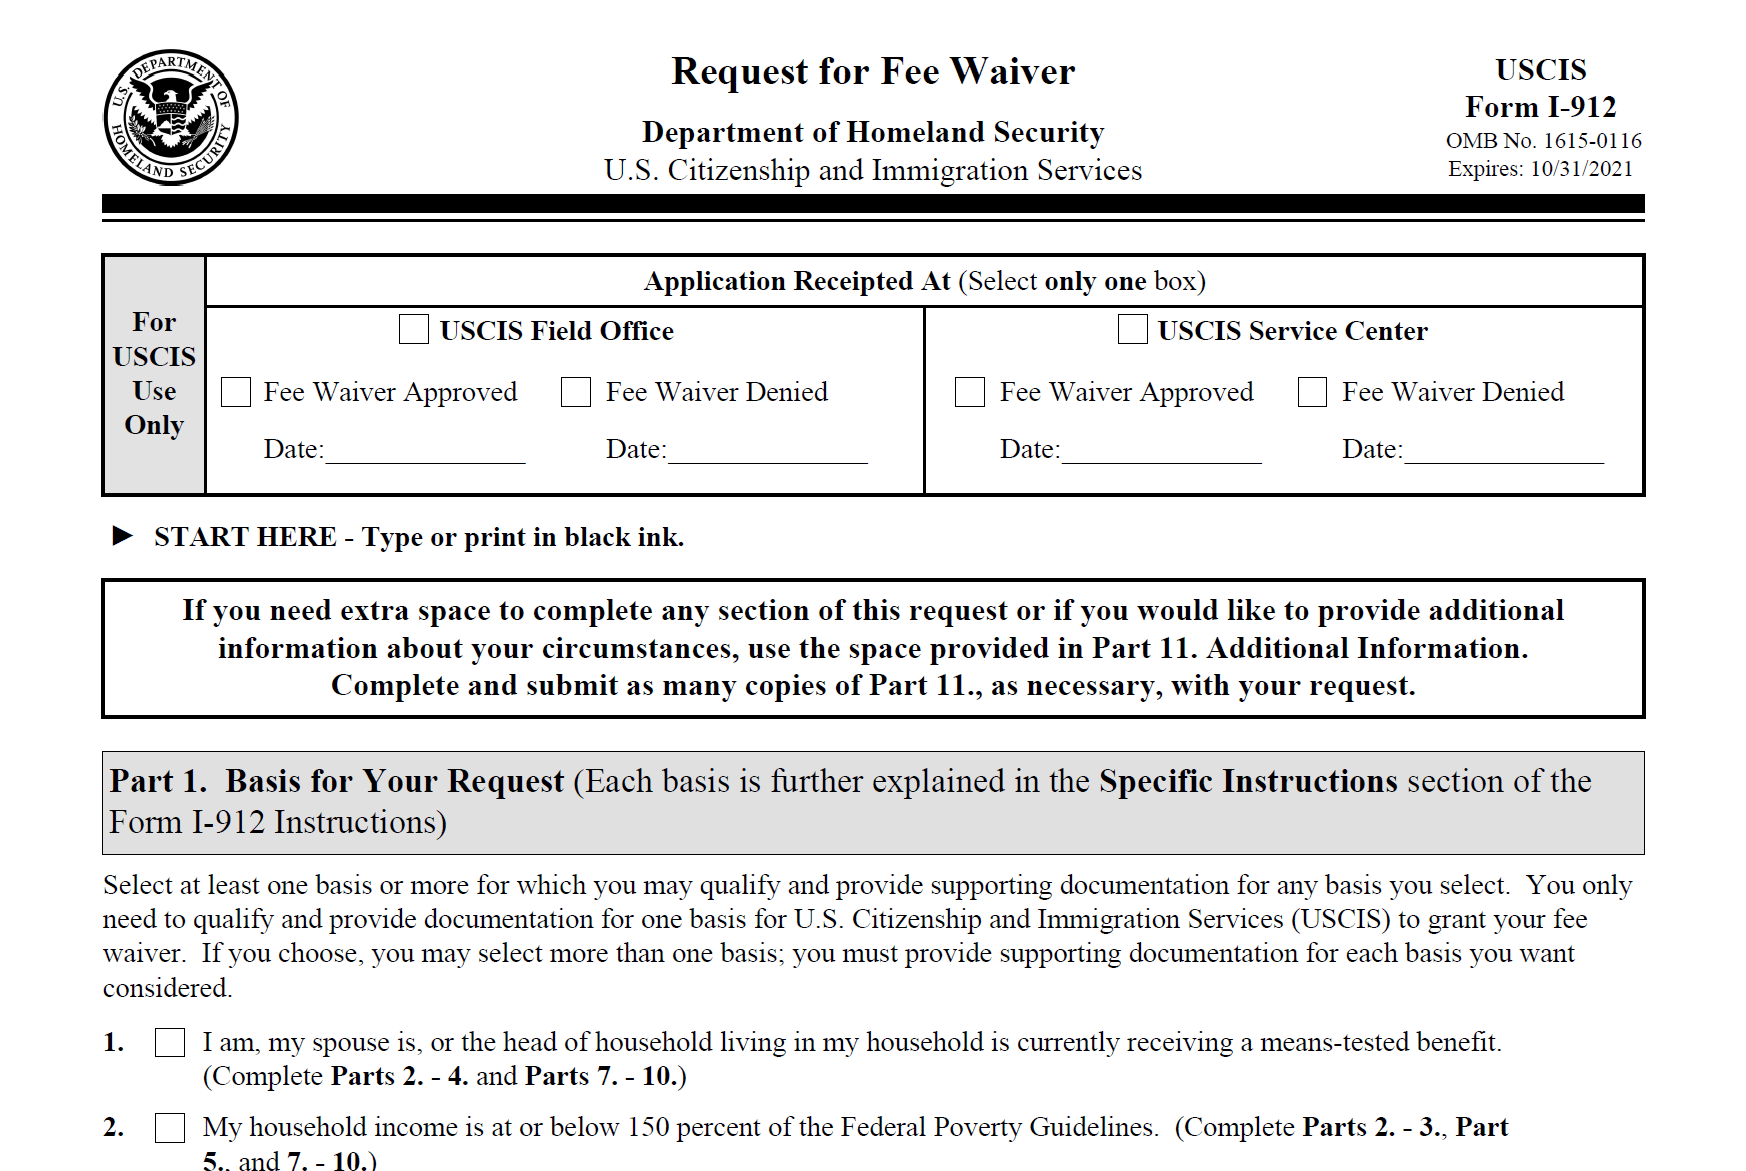 Form I-912: Request for Fee Waiver